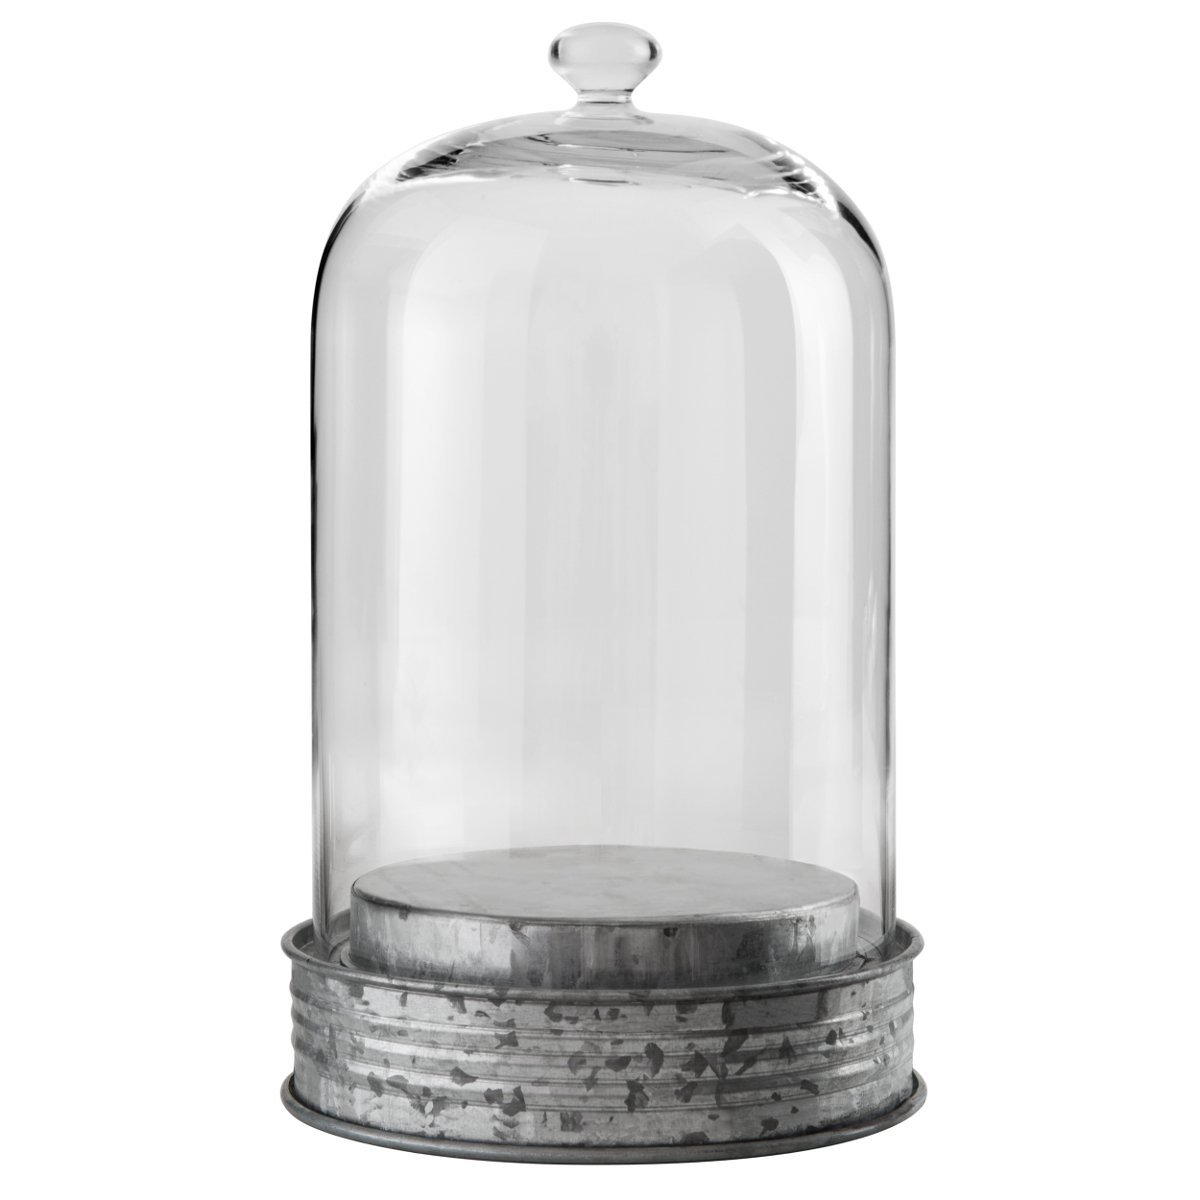 ARTLAND Oasis Glass 11.5 Inch Large Botanical Cloche with Galvanized Base by ARTLAND